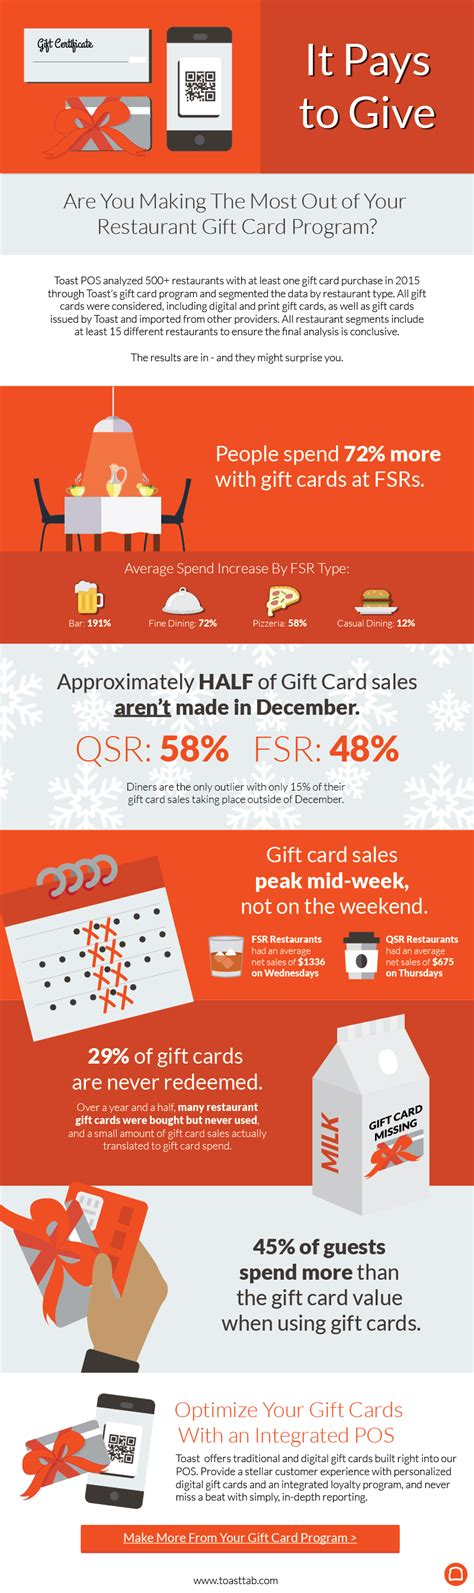 On The Border Gift Card Restaurants - it pays to give restaurant gift cards in 2016 infographic